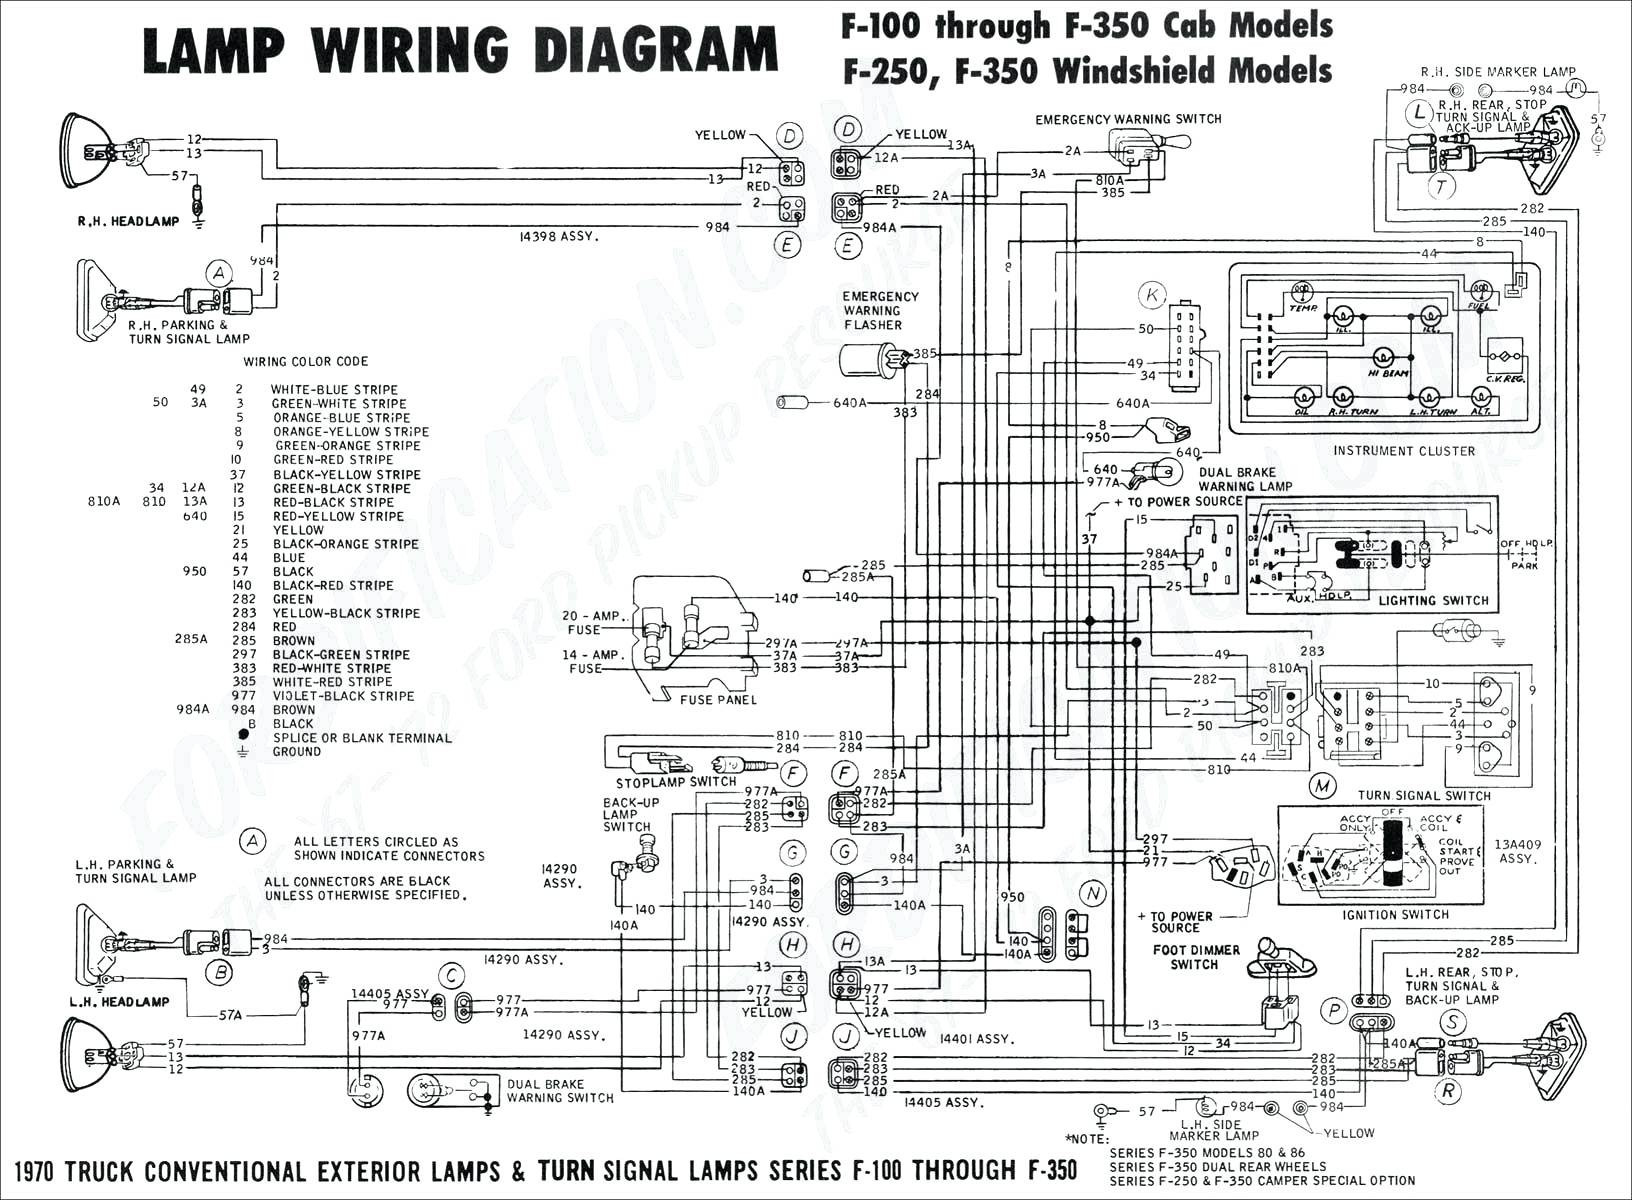 Strange Camera Parts Diagram Free Download Wiring Diagram Schematic Basic Wiring 101 Mecadwellnesstrialsorg